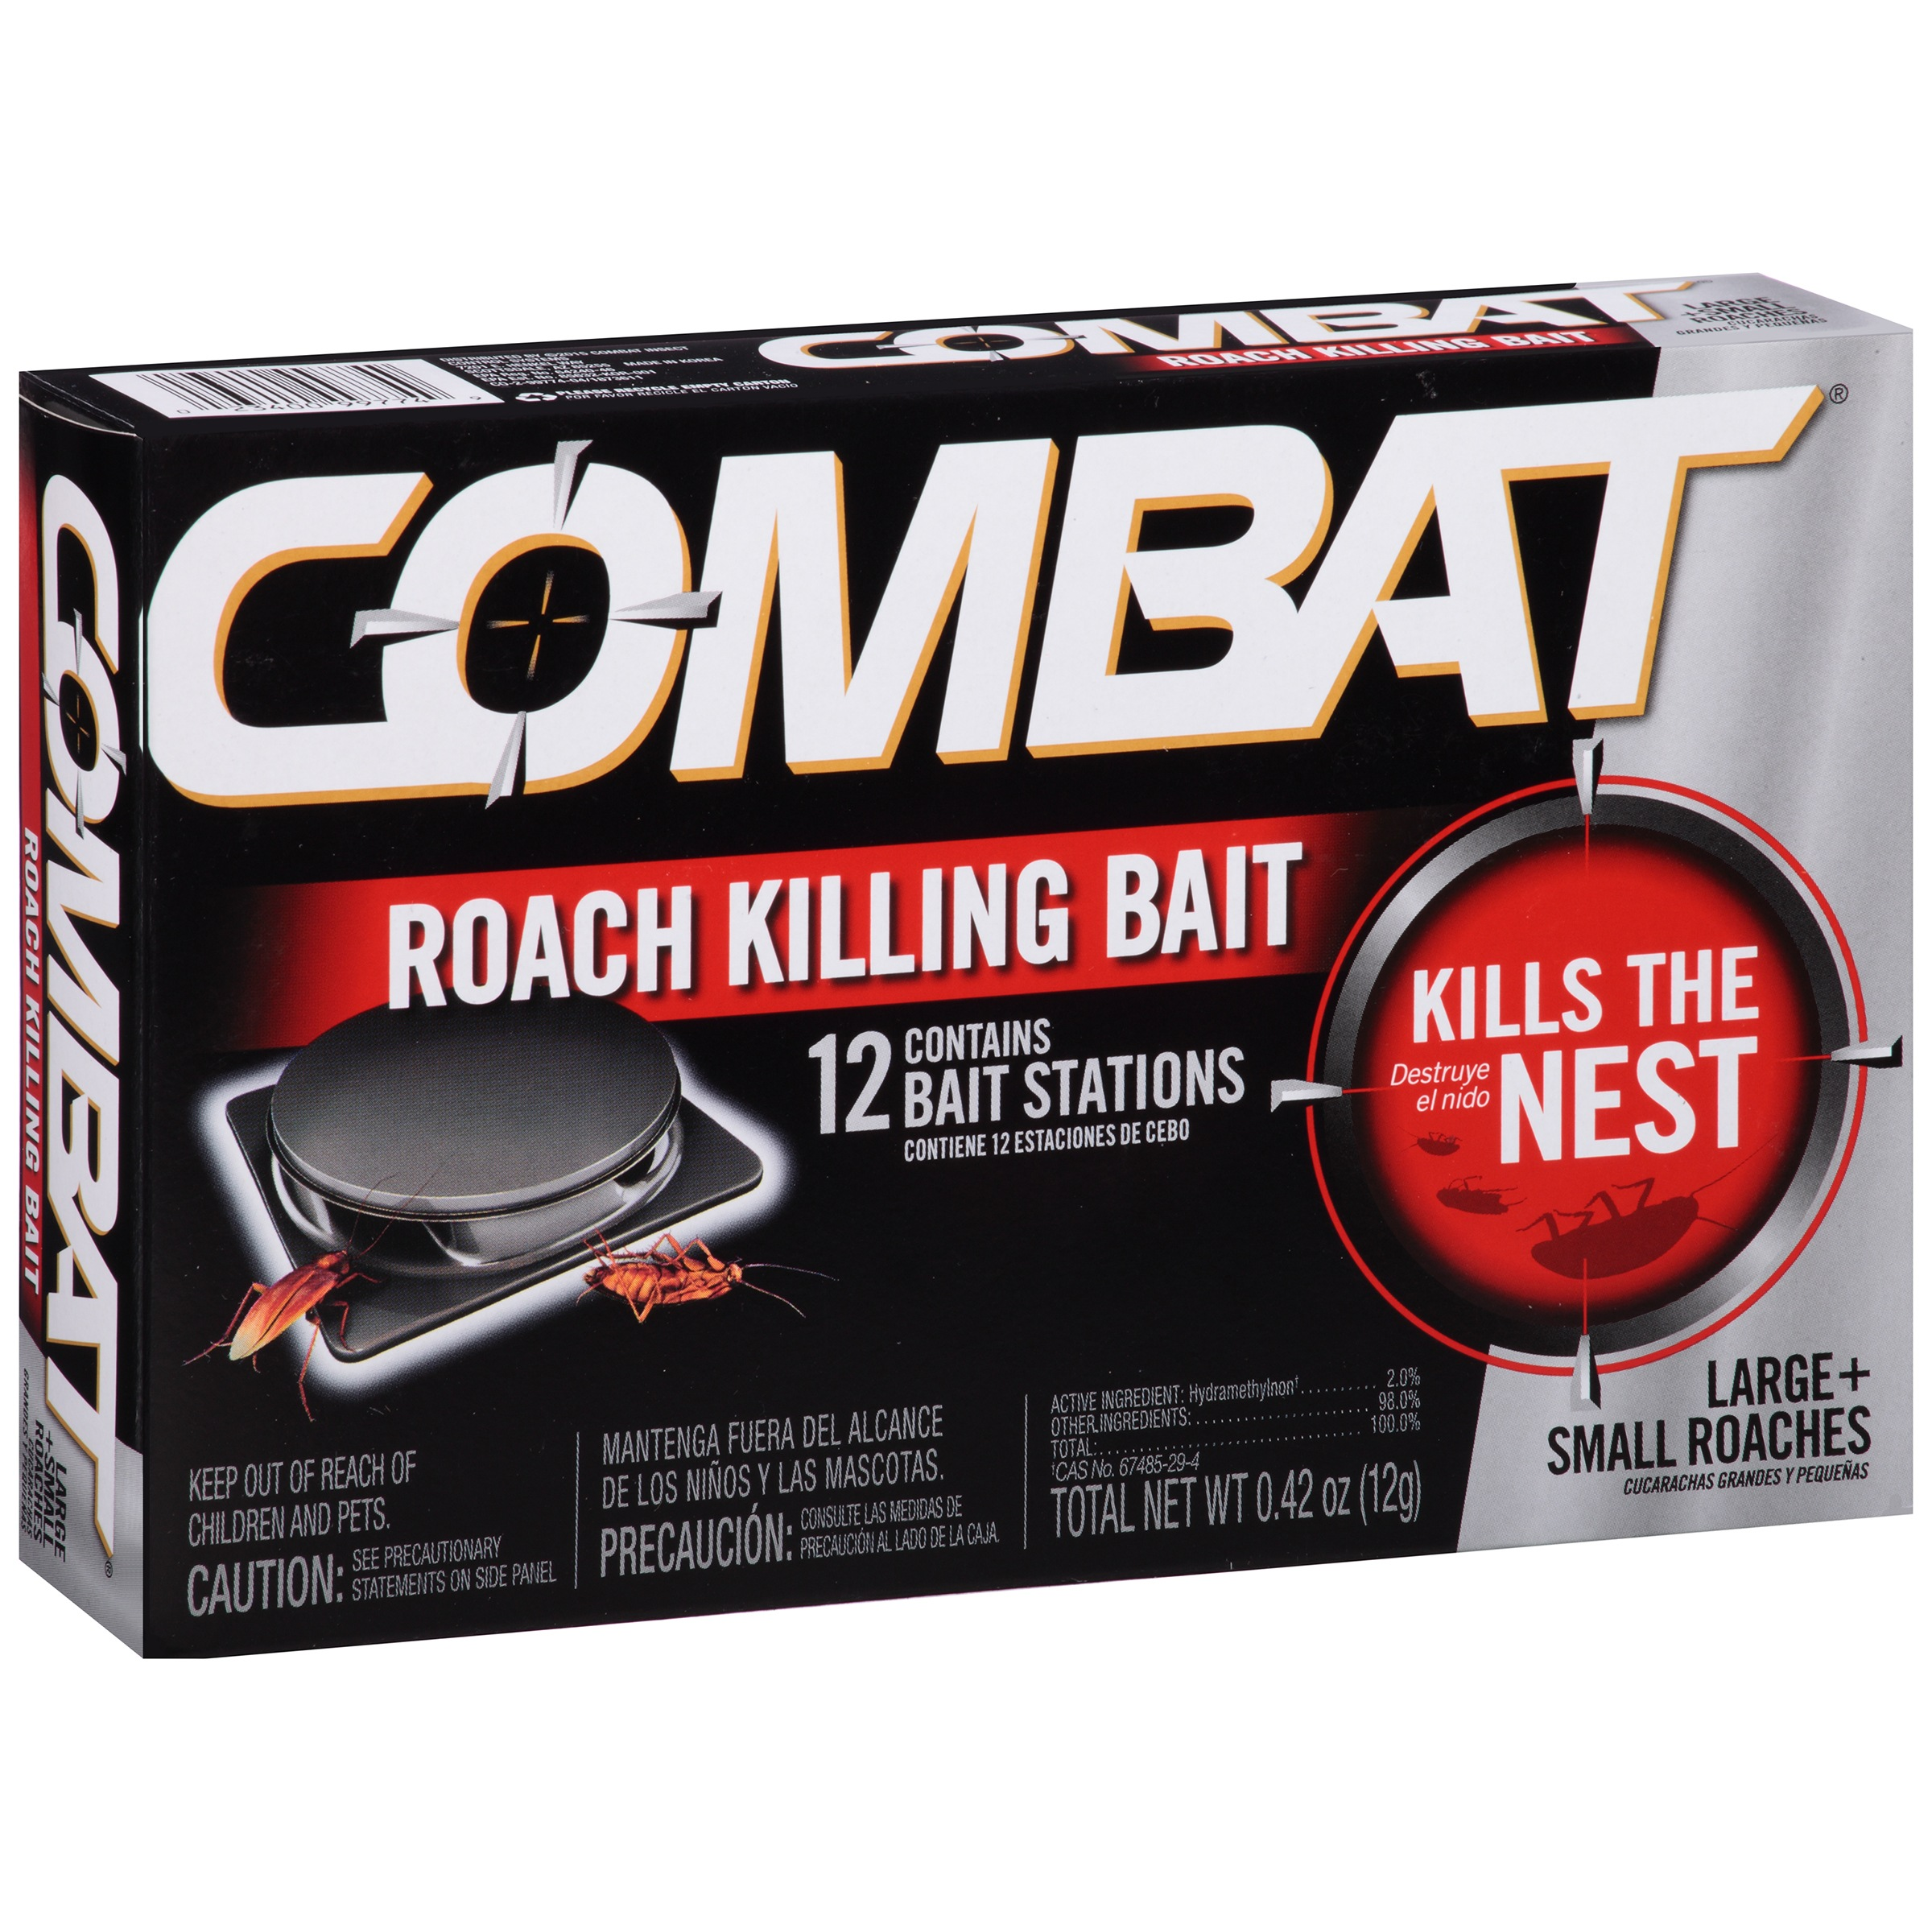 Combat® Small + Large Roaches Roach Killing Bait Stations 12 ct Box